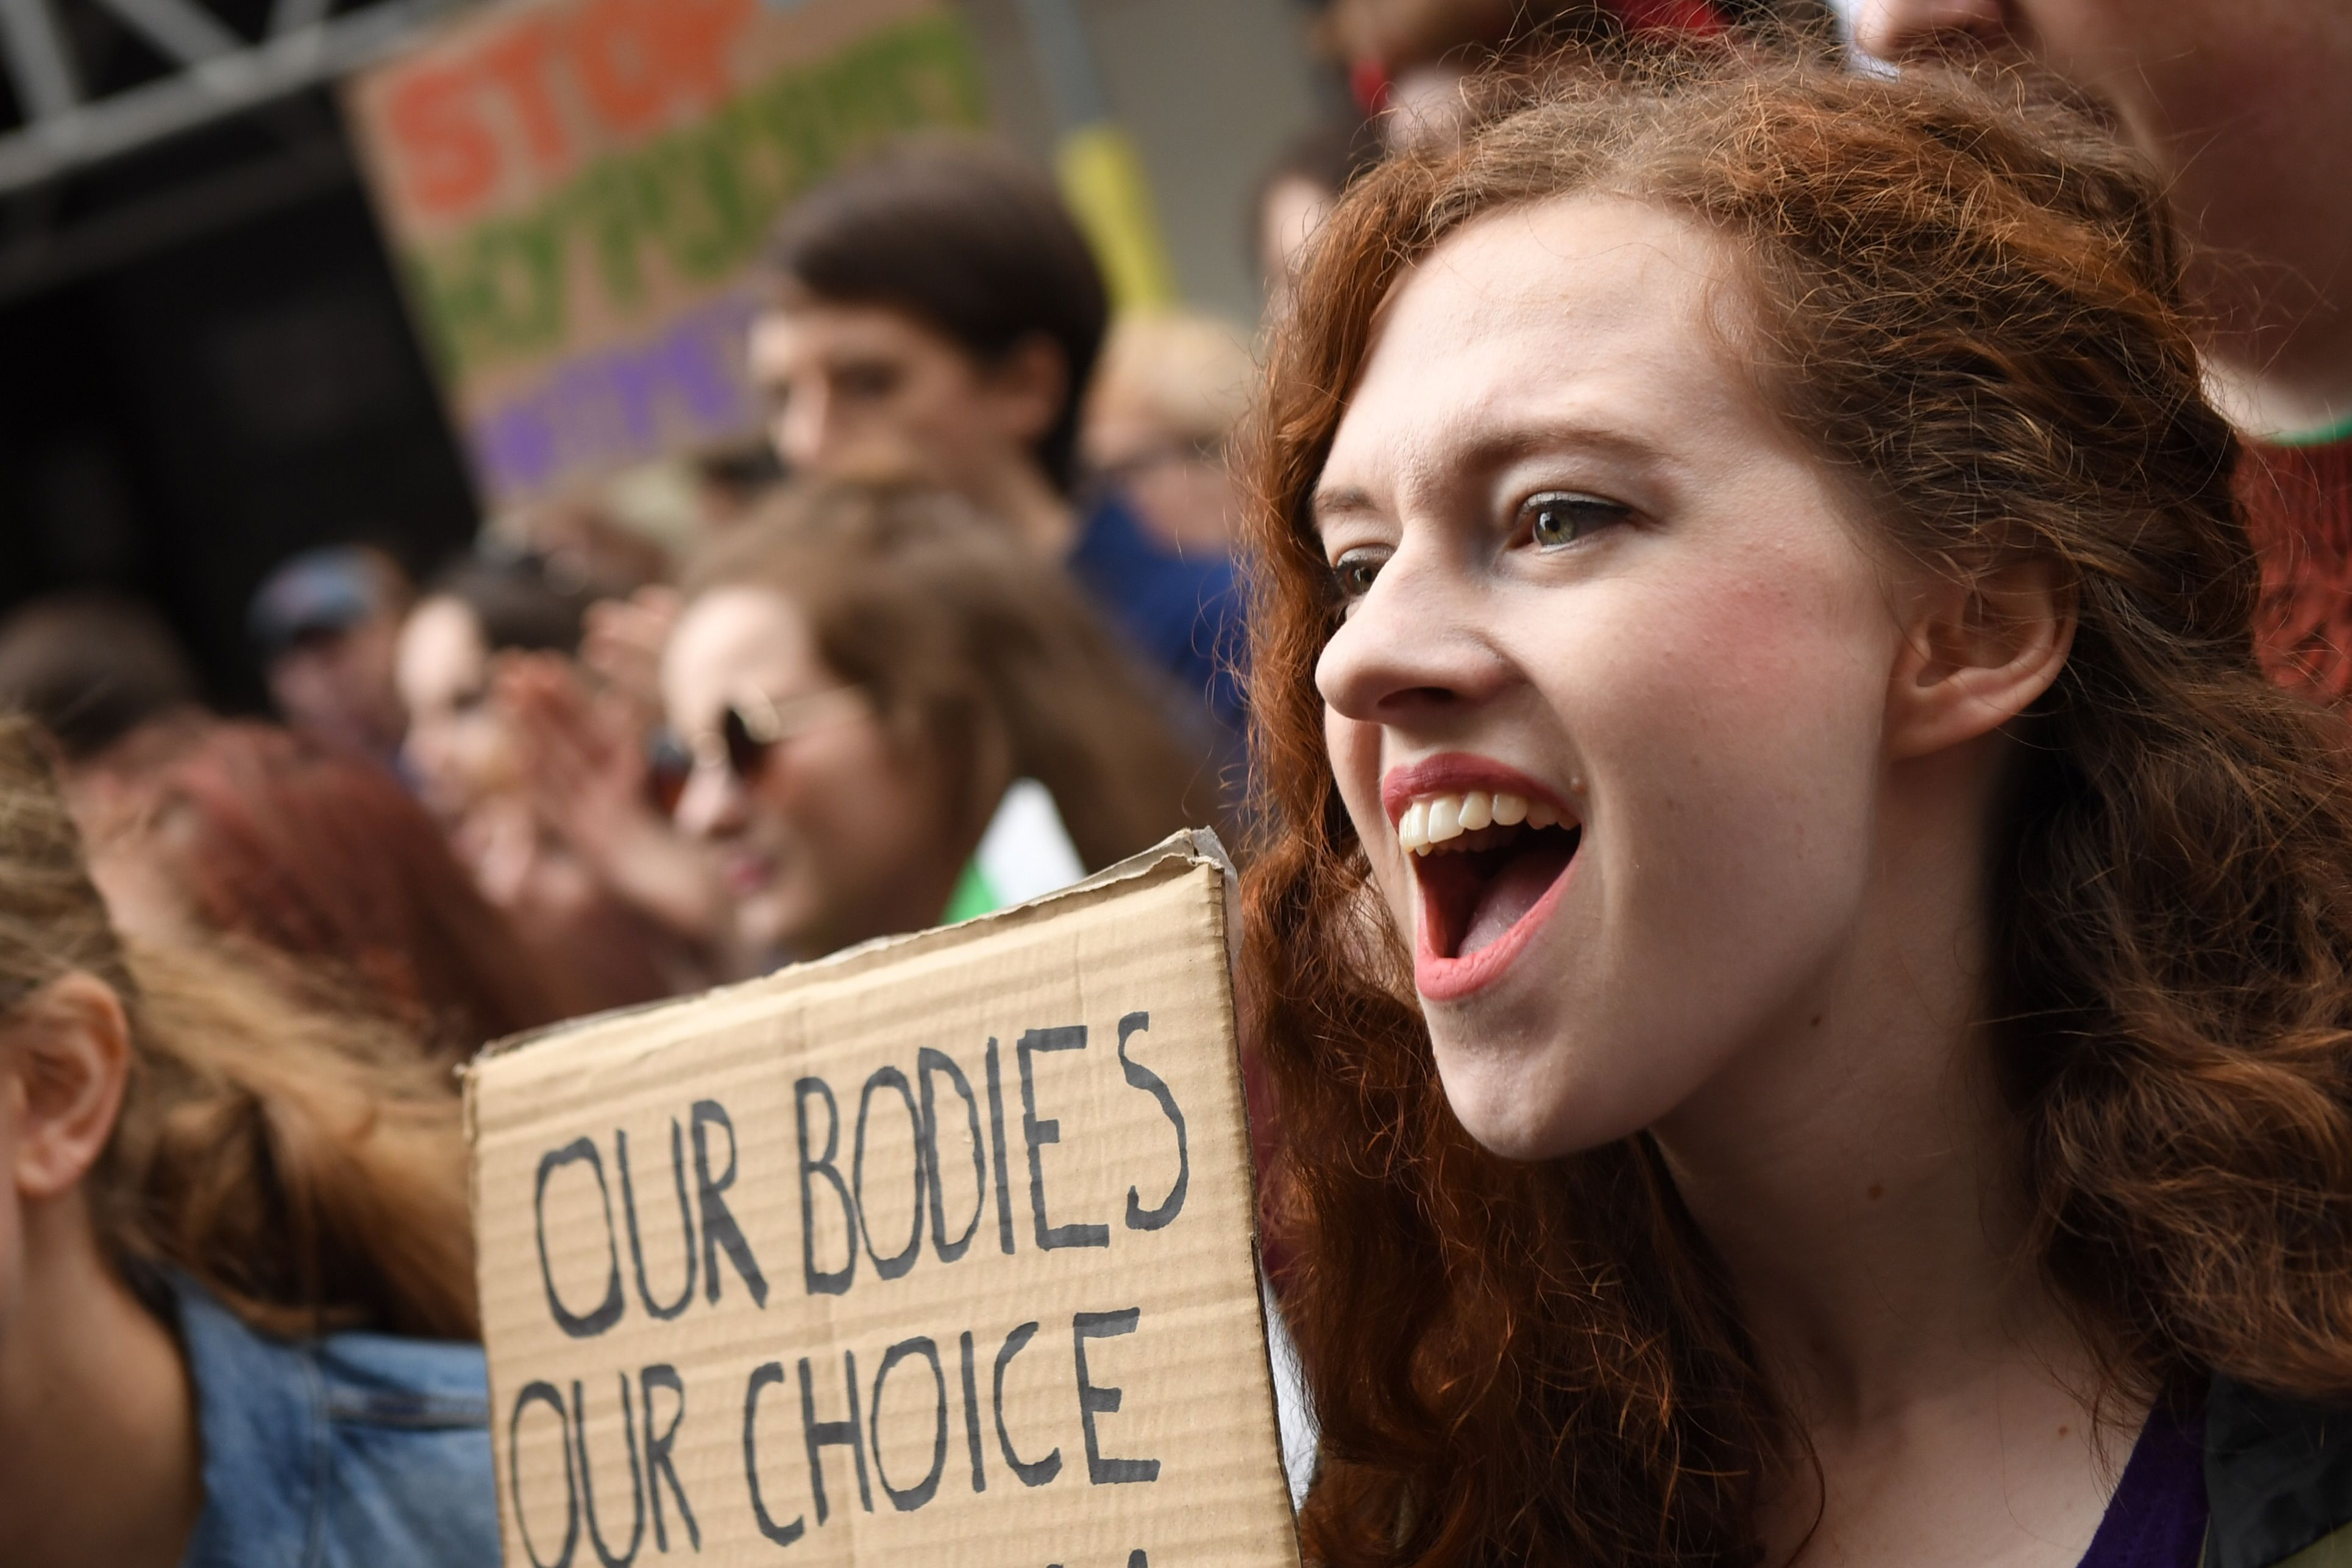 Protesters hold up placards during the London March for Choice, calling for the legalizing of abortion in Ireland after the referendum announcement, outside the Embassy of Ireland in central London on September 30, 2017.